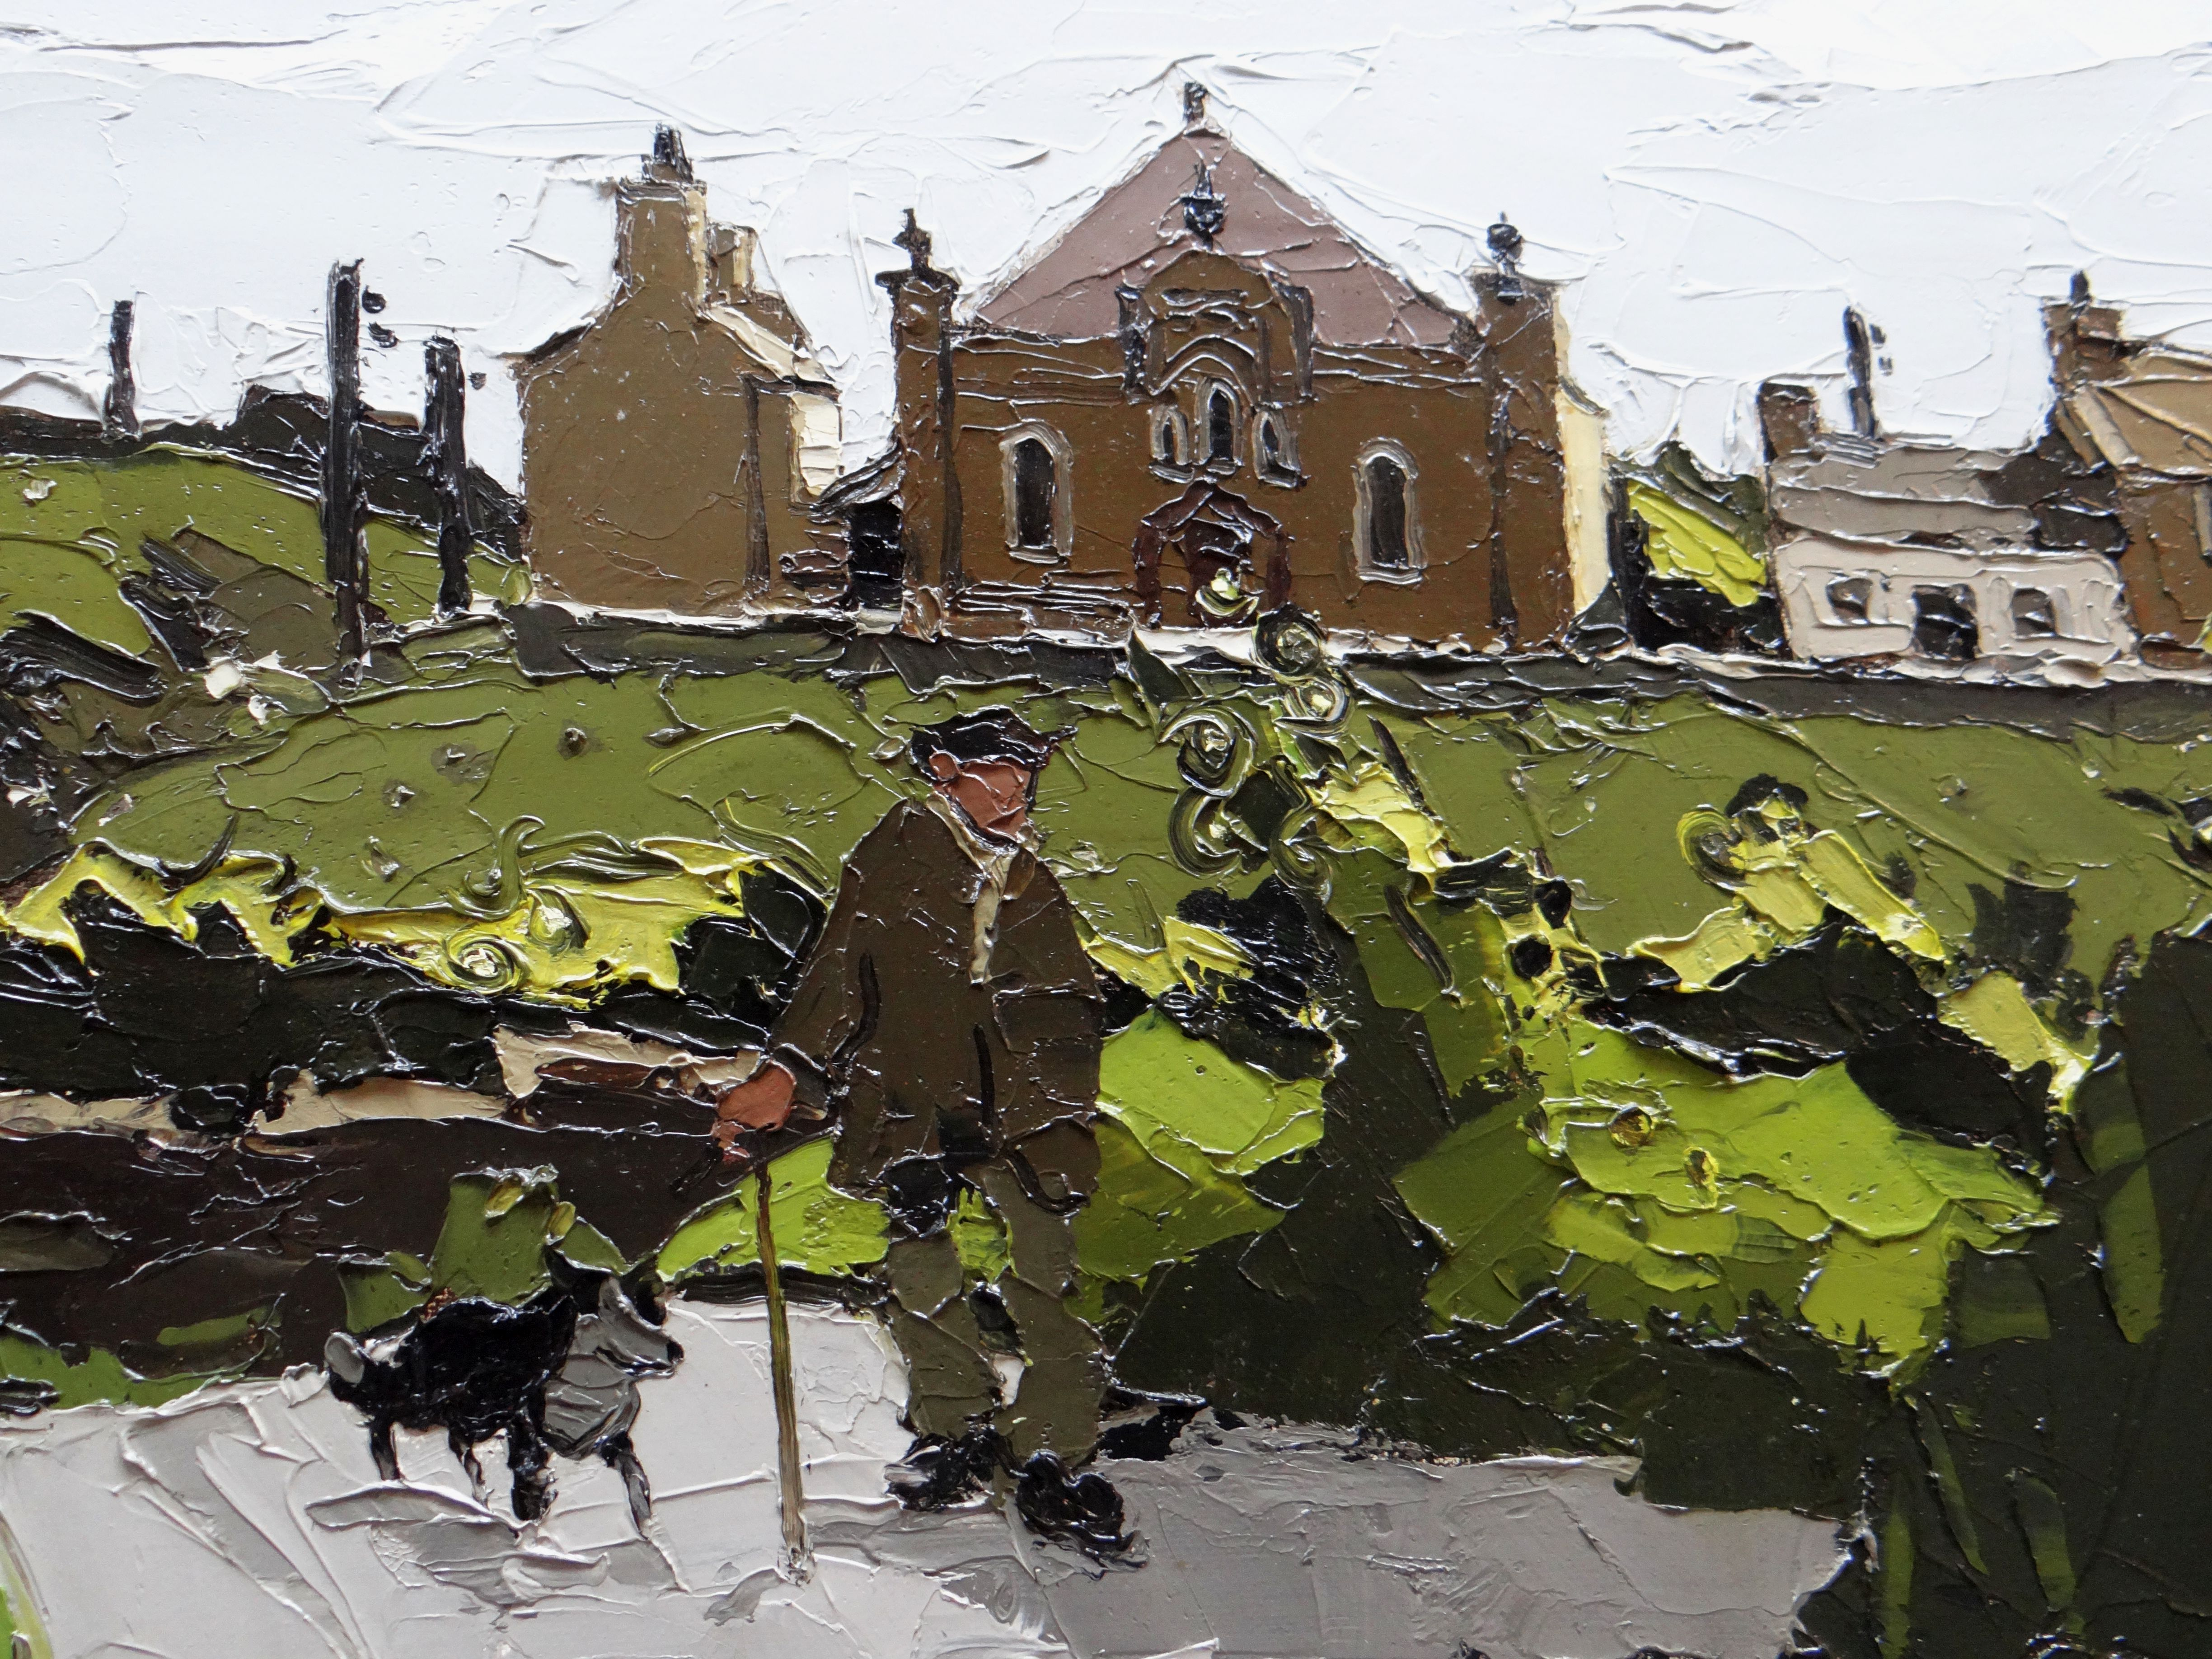 SIR KYFFIN WILLIAMS RA oil on canvas - Ynys Mon (Anglesey) landscape with farmer and dog walking - Image 2 of 4